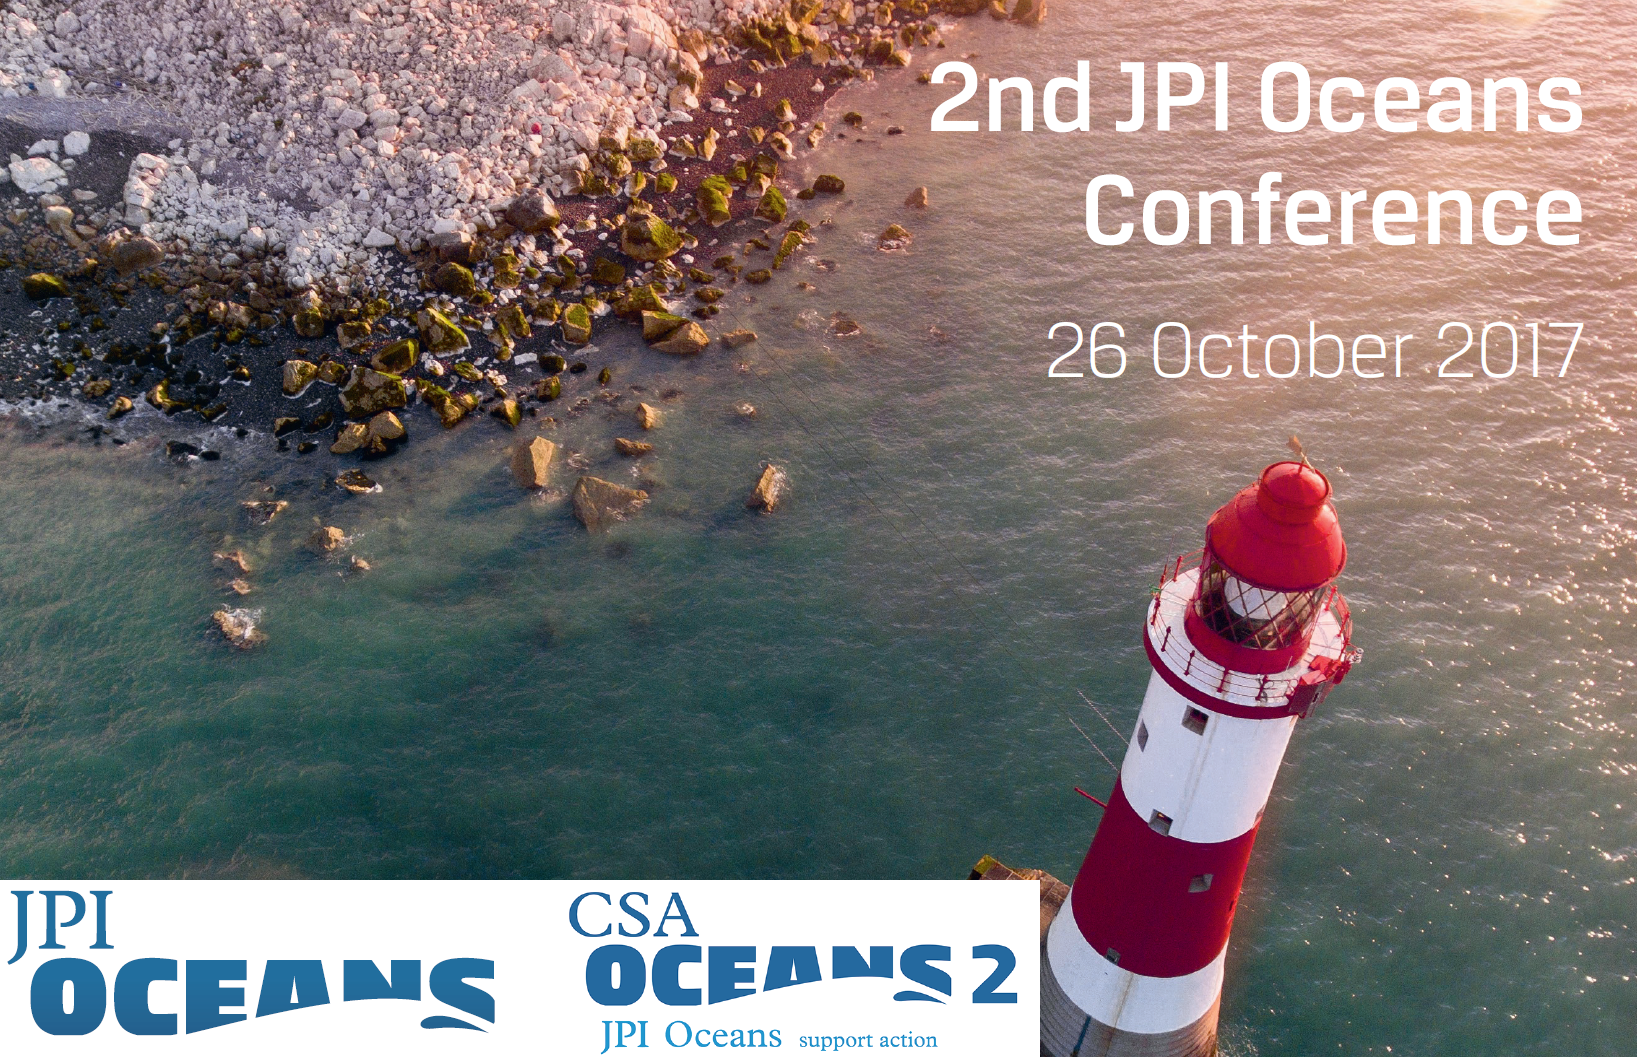 BLUEMED will showcase to the coming 2nd JPI Oceans Conference in Lisbon on 26th October